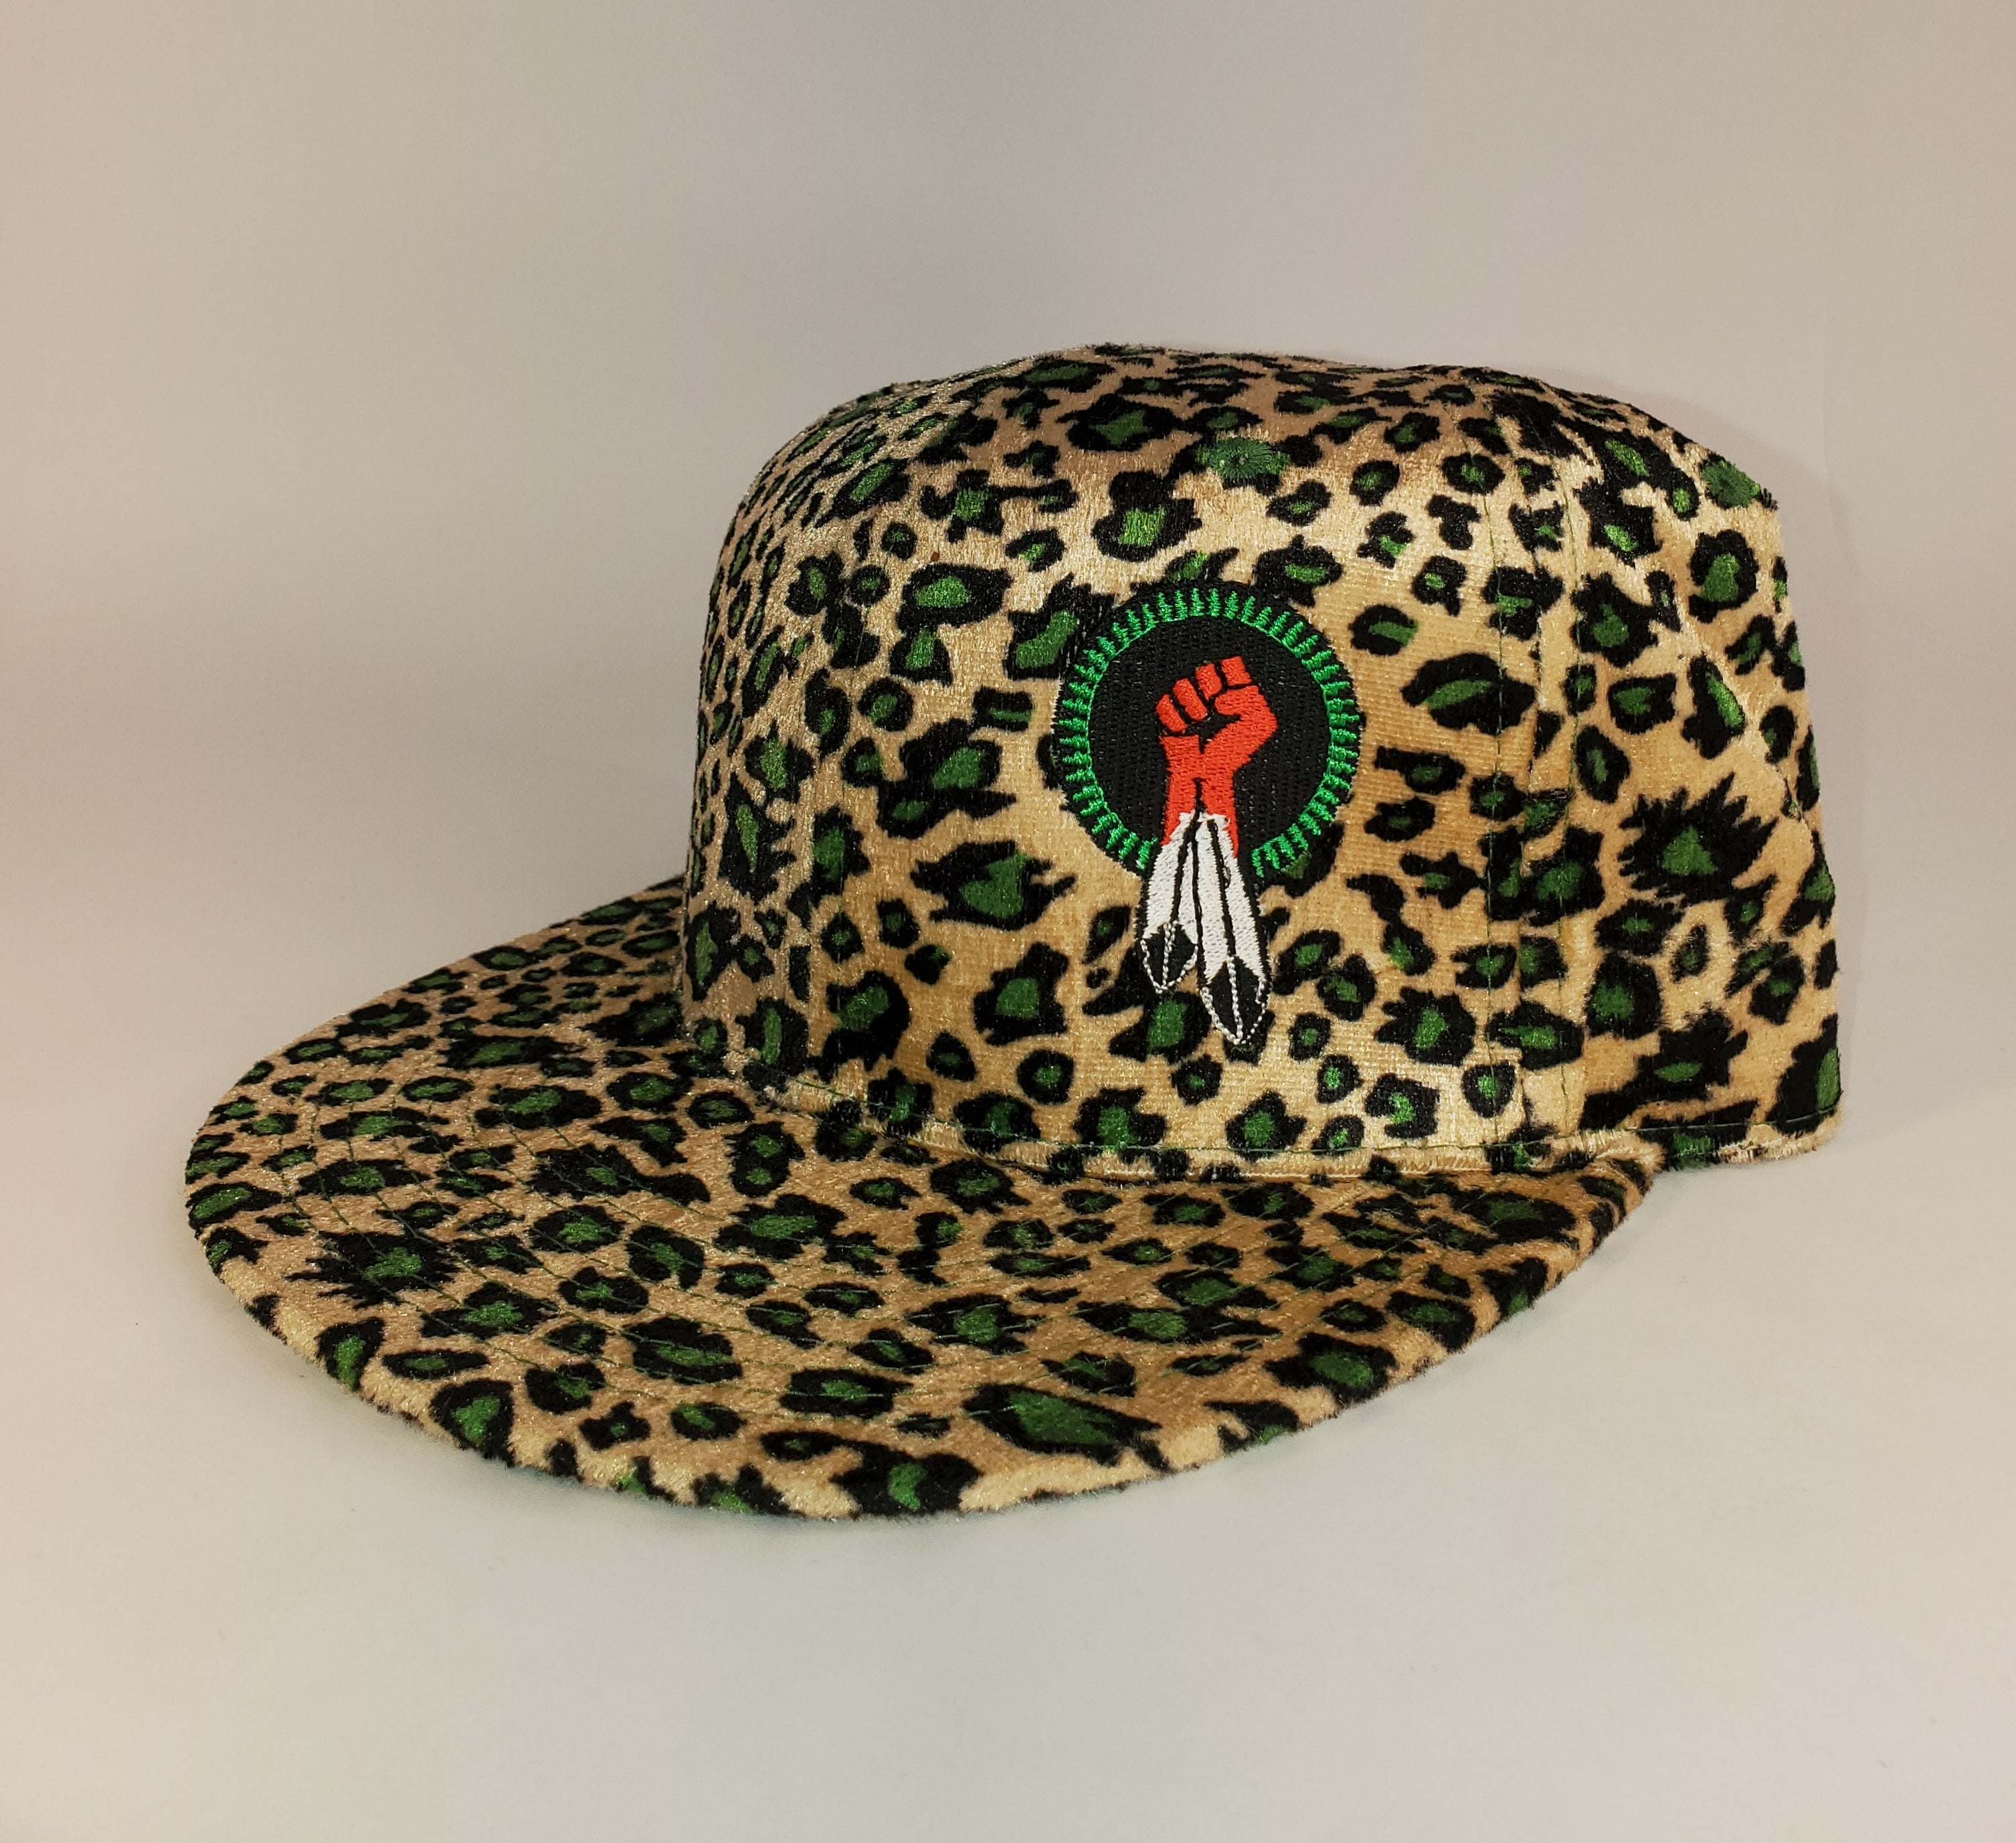 N8V MOVEMENT cap embroidered leopard green snapback